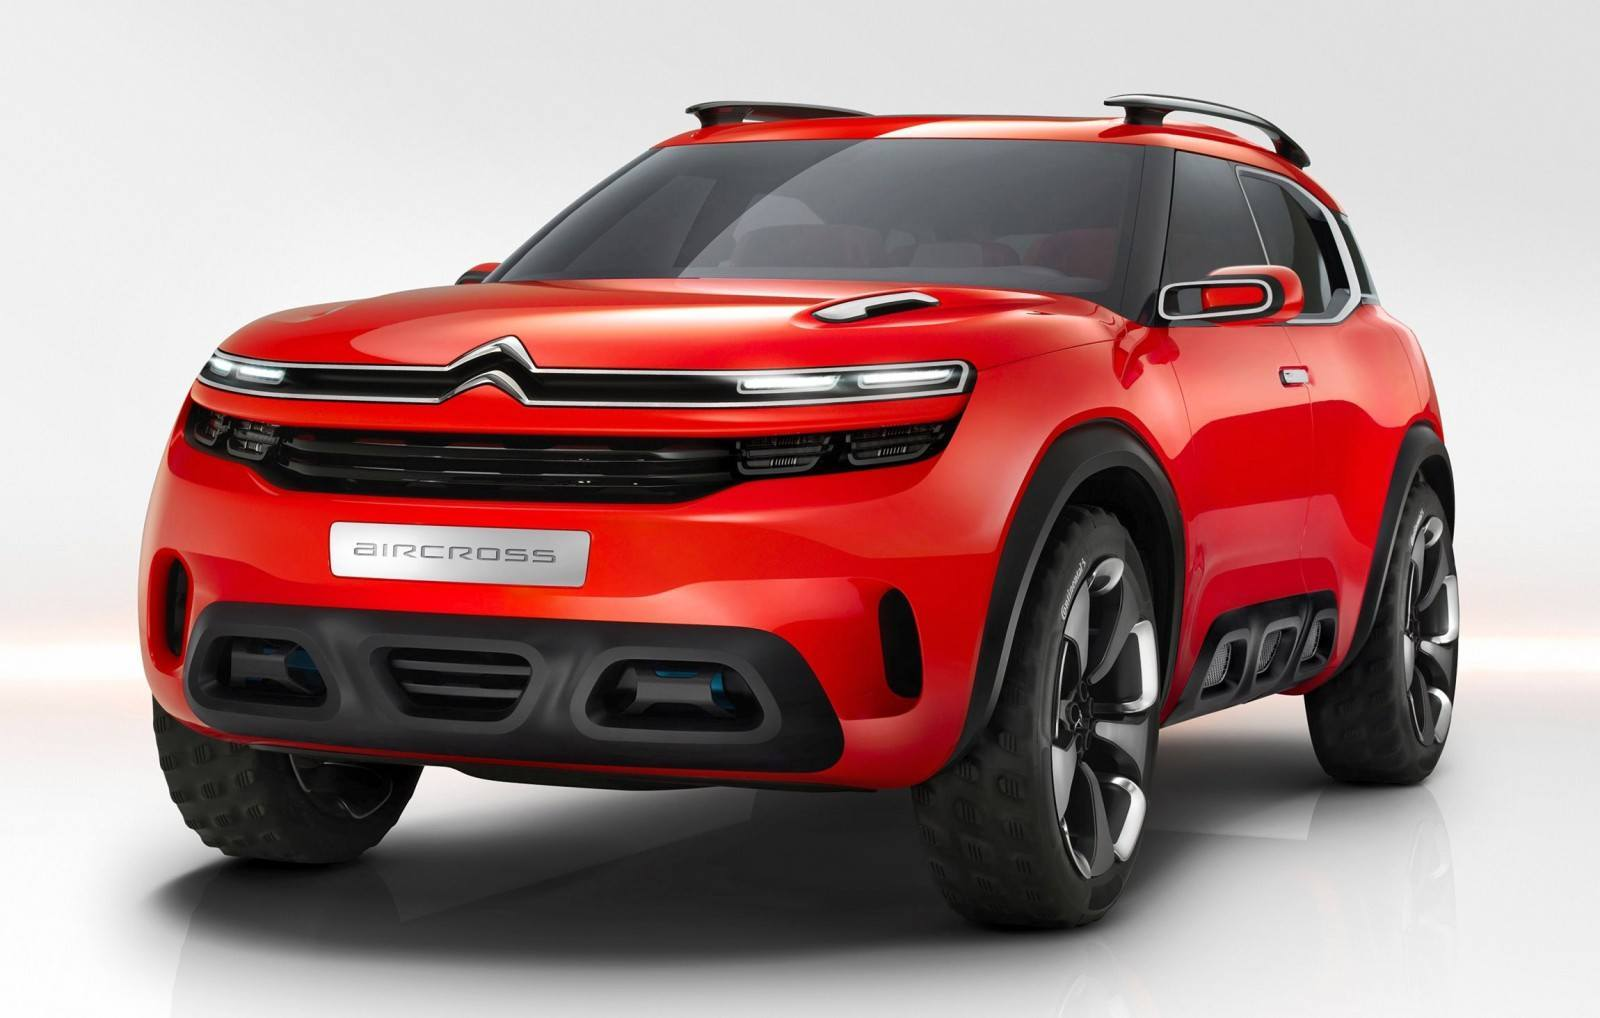 2015 citroen aircross concept is production intent 5 seat suv car revs. Black Bedroom Furniture Sets. Home Design Ideas